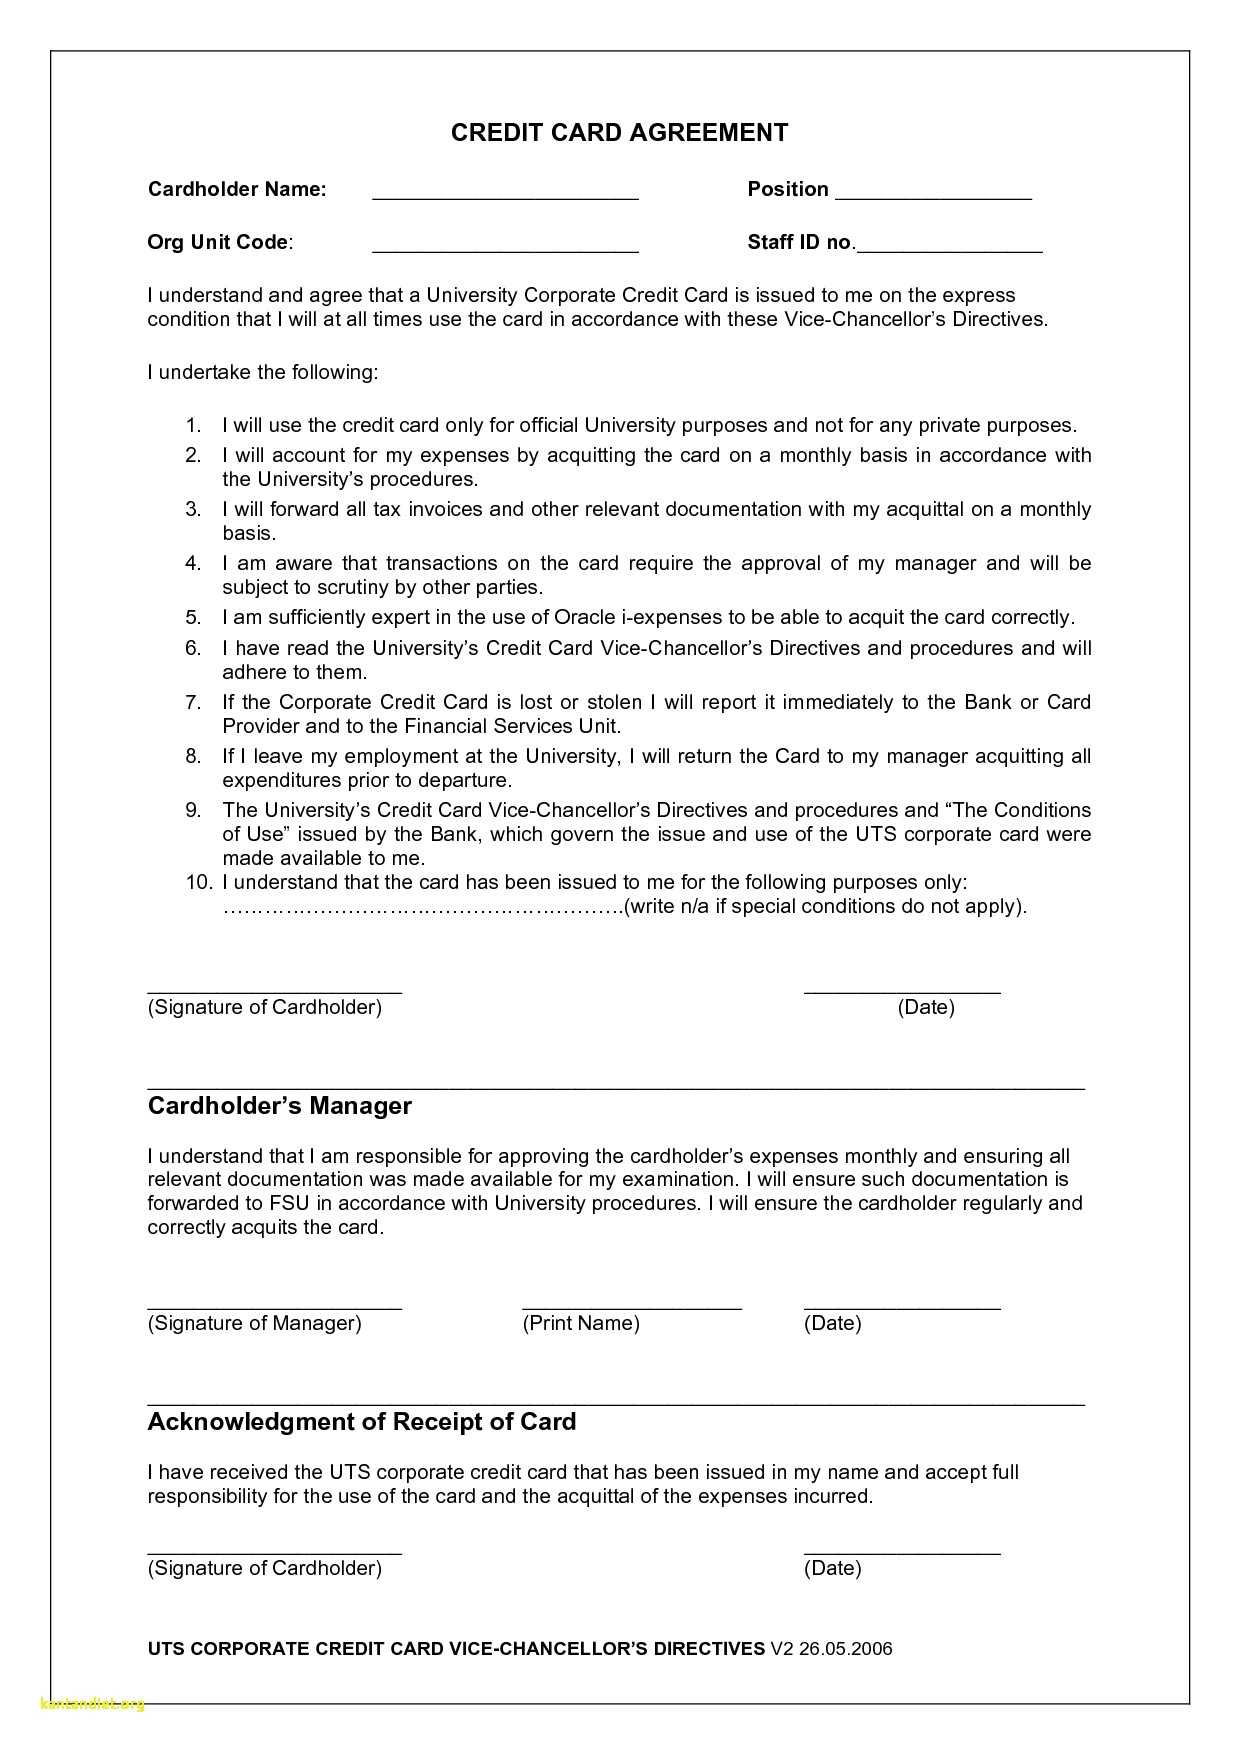 Employee Credit Card Agreement | Business Template Inside Corporate Credit Card Agreement Template